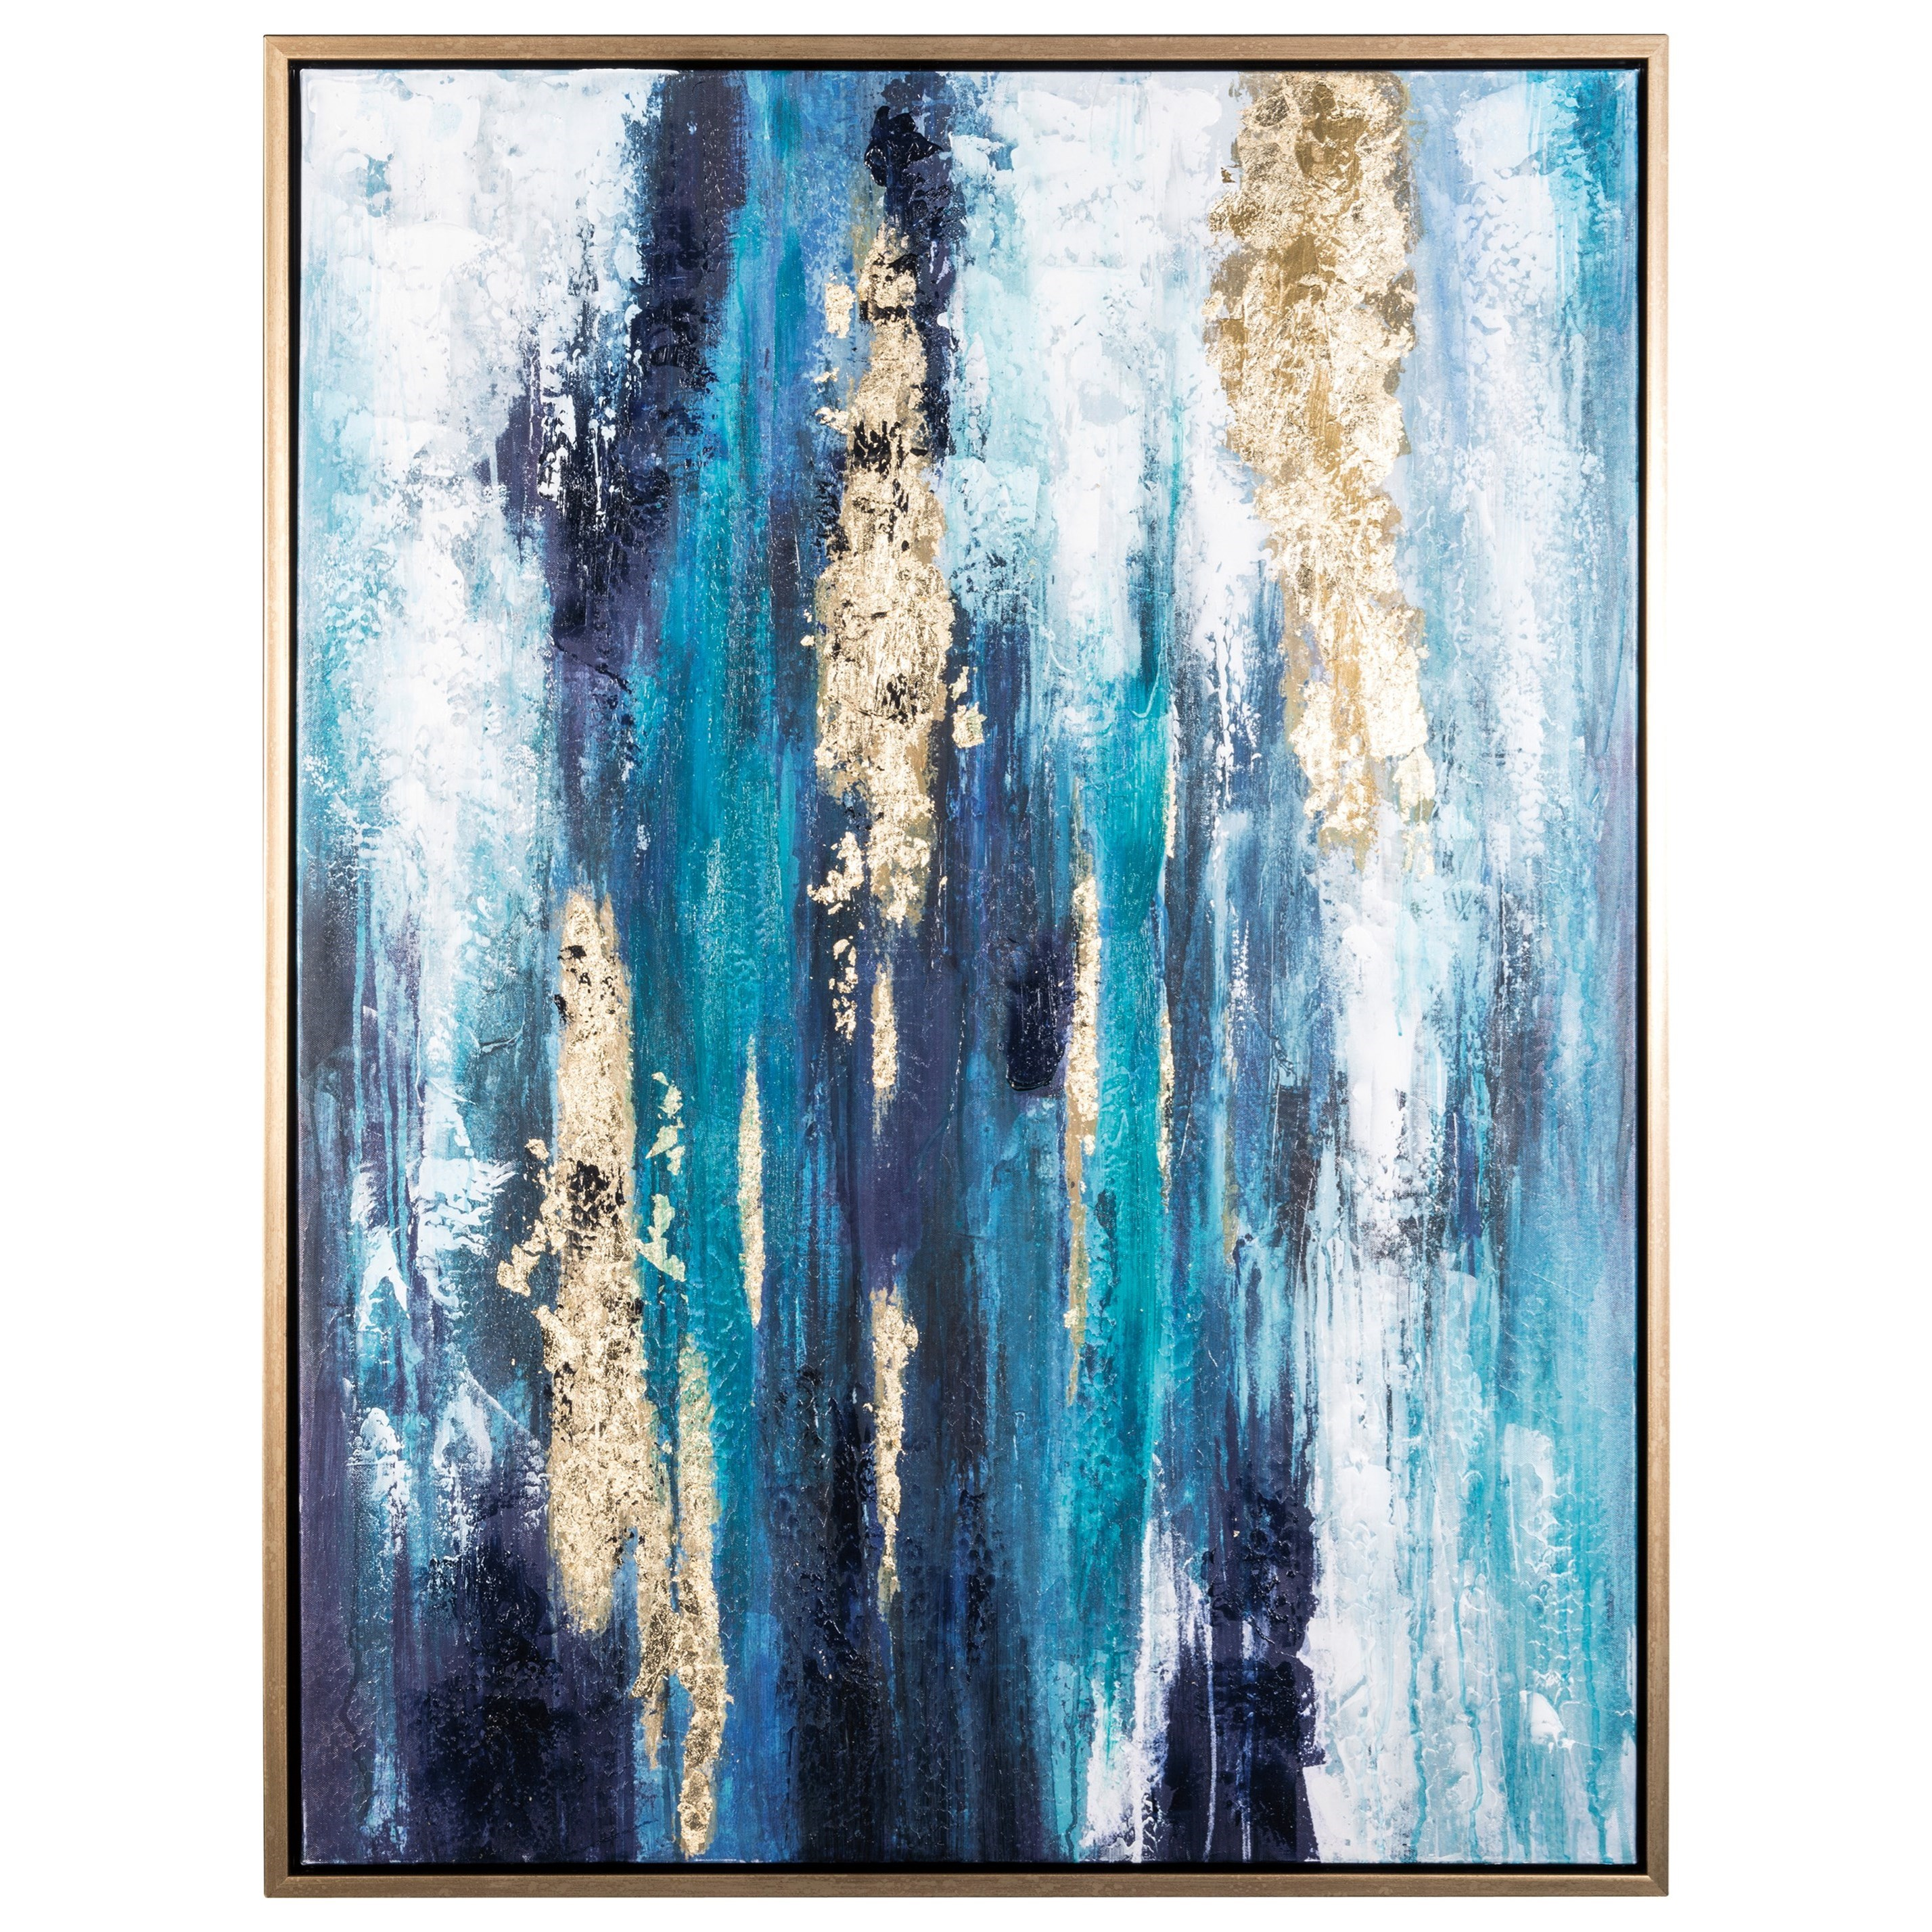 Wall Art Dinorah Teal Blue Wall Art by Signature Design by Ashley at VanDrie Home Furnishings